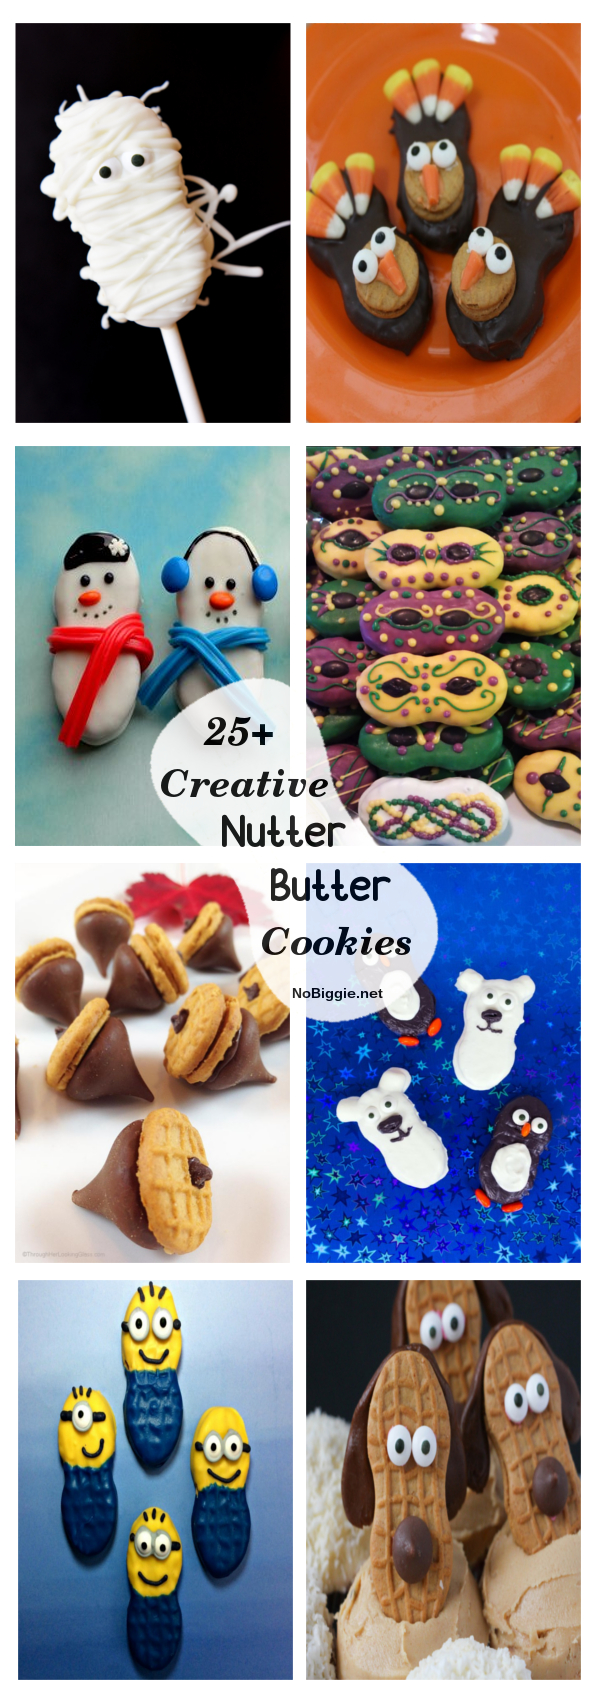 Creative Nutter Butter Cookies - Cute and Festive ways to dress up a classic cookie! #nutterbutter #cookies #creativenutterbuttercookies #cookiedecorating #creativecookies